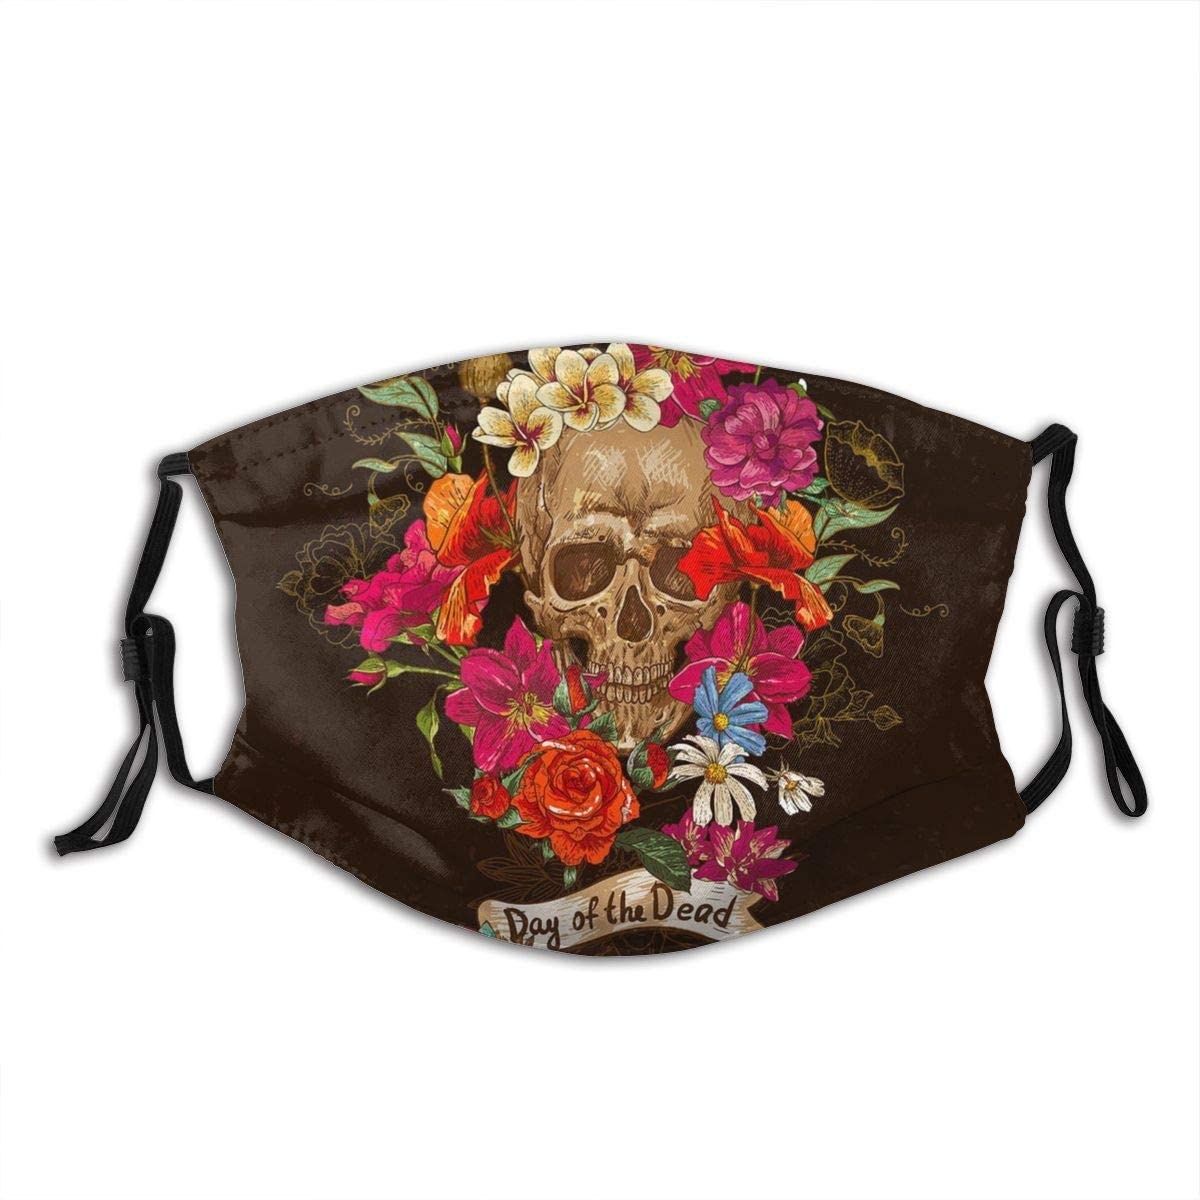 Skull And Flowers Face Mask Reusable Adjustable Balaclava Bandana Cloth With 2 Filters For Men And Women